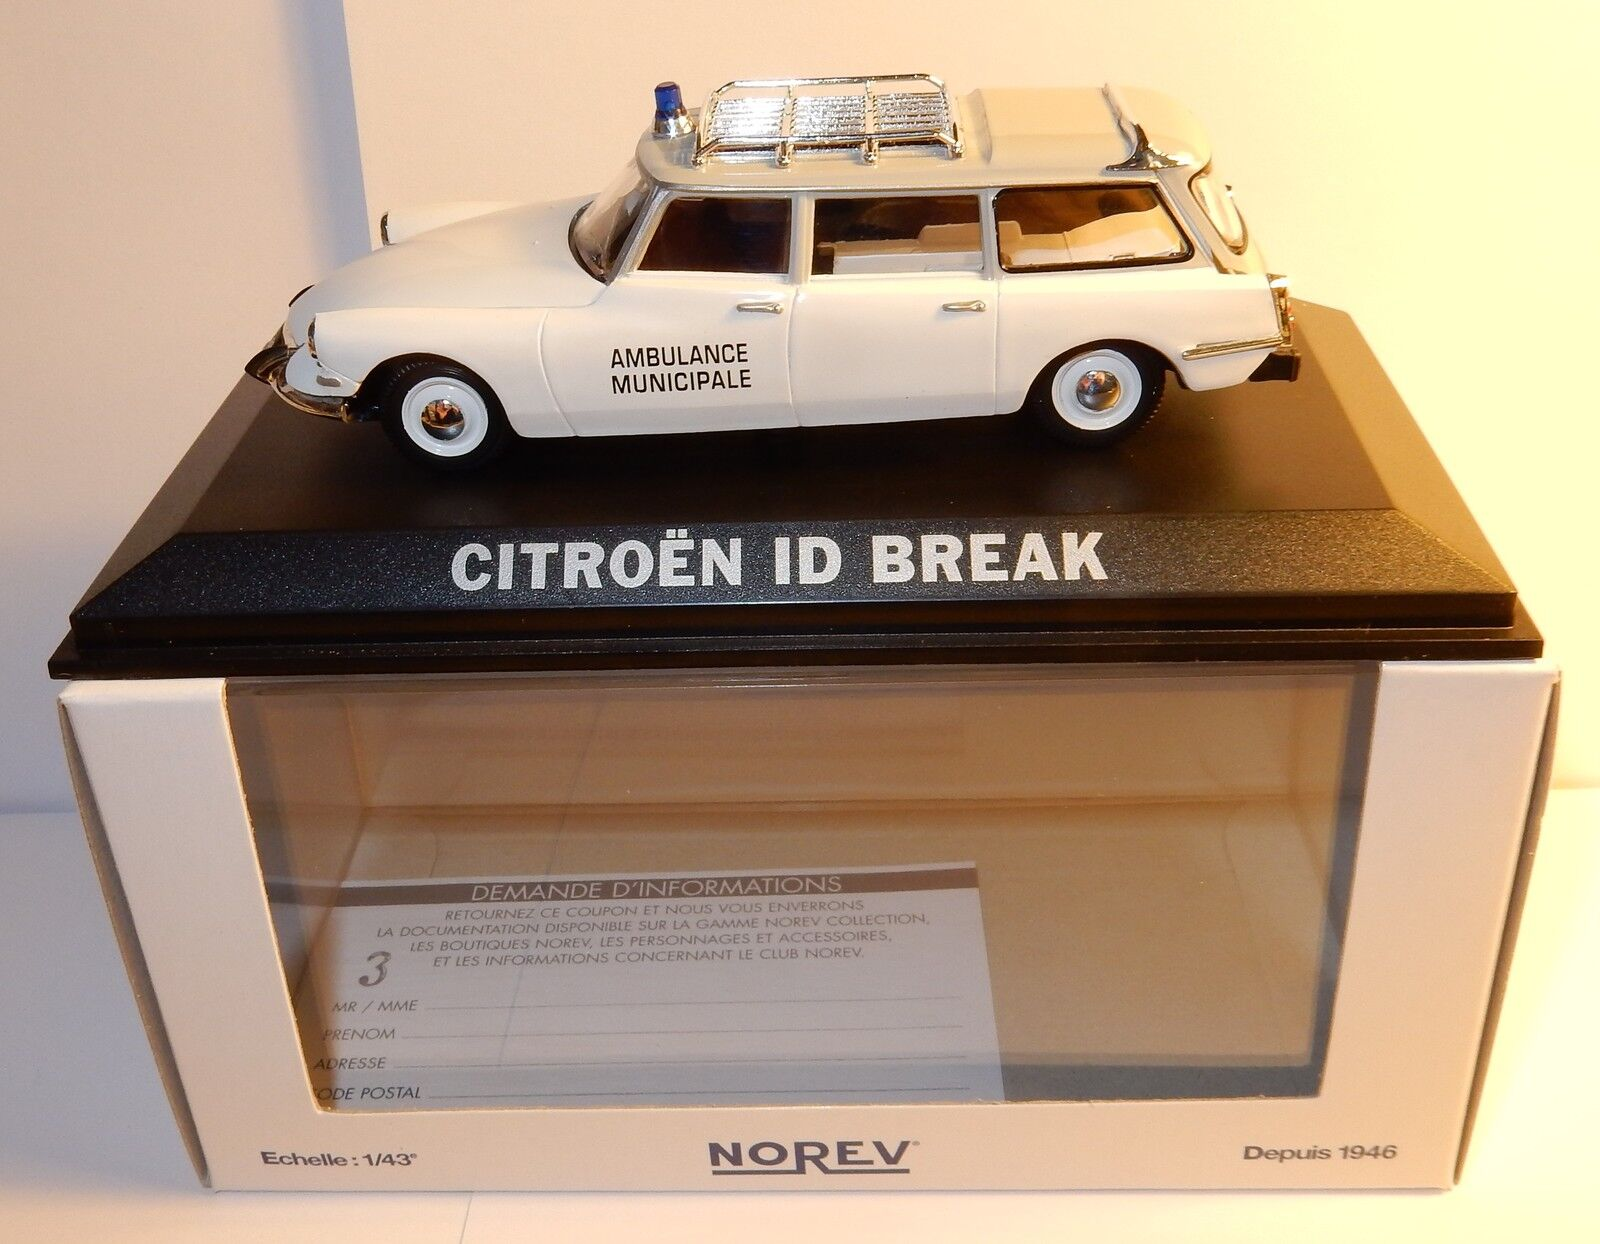 NOREV CITROEN DS ID 19 BREAK AMBULANCE MUNICIPAL EMERGENCY 1 43 IN BOX